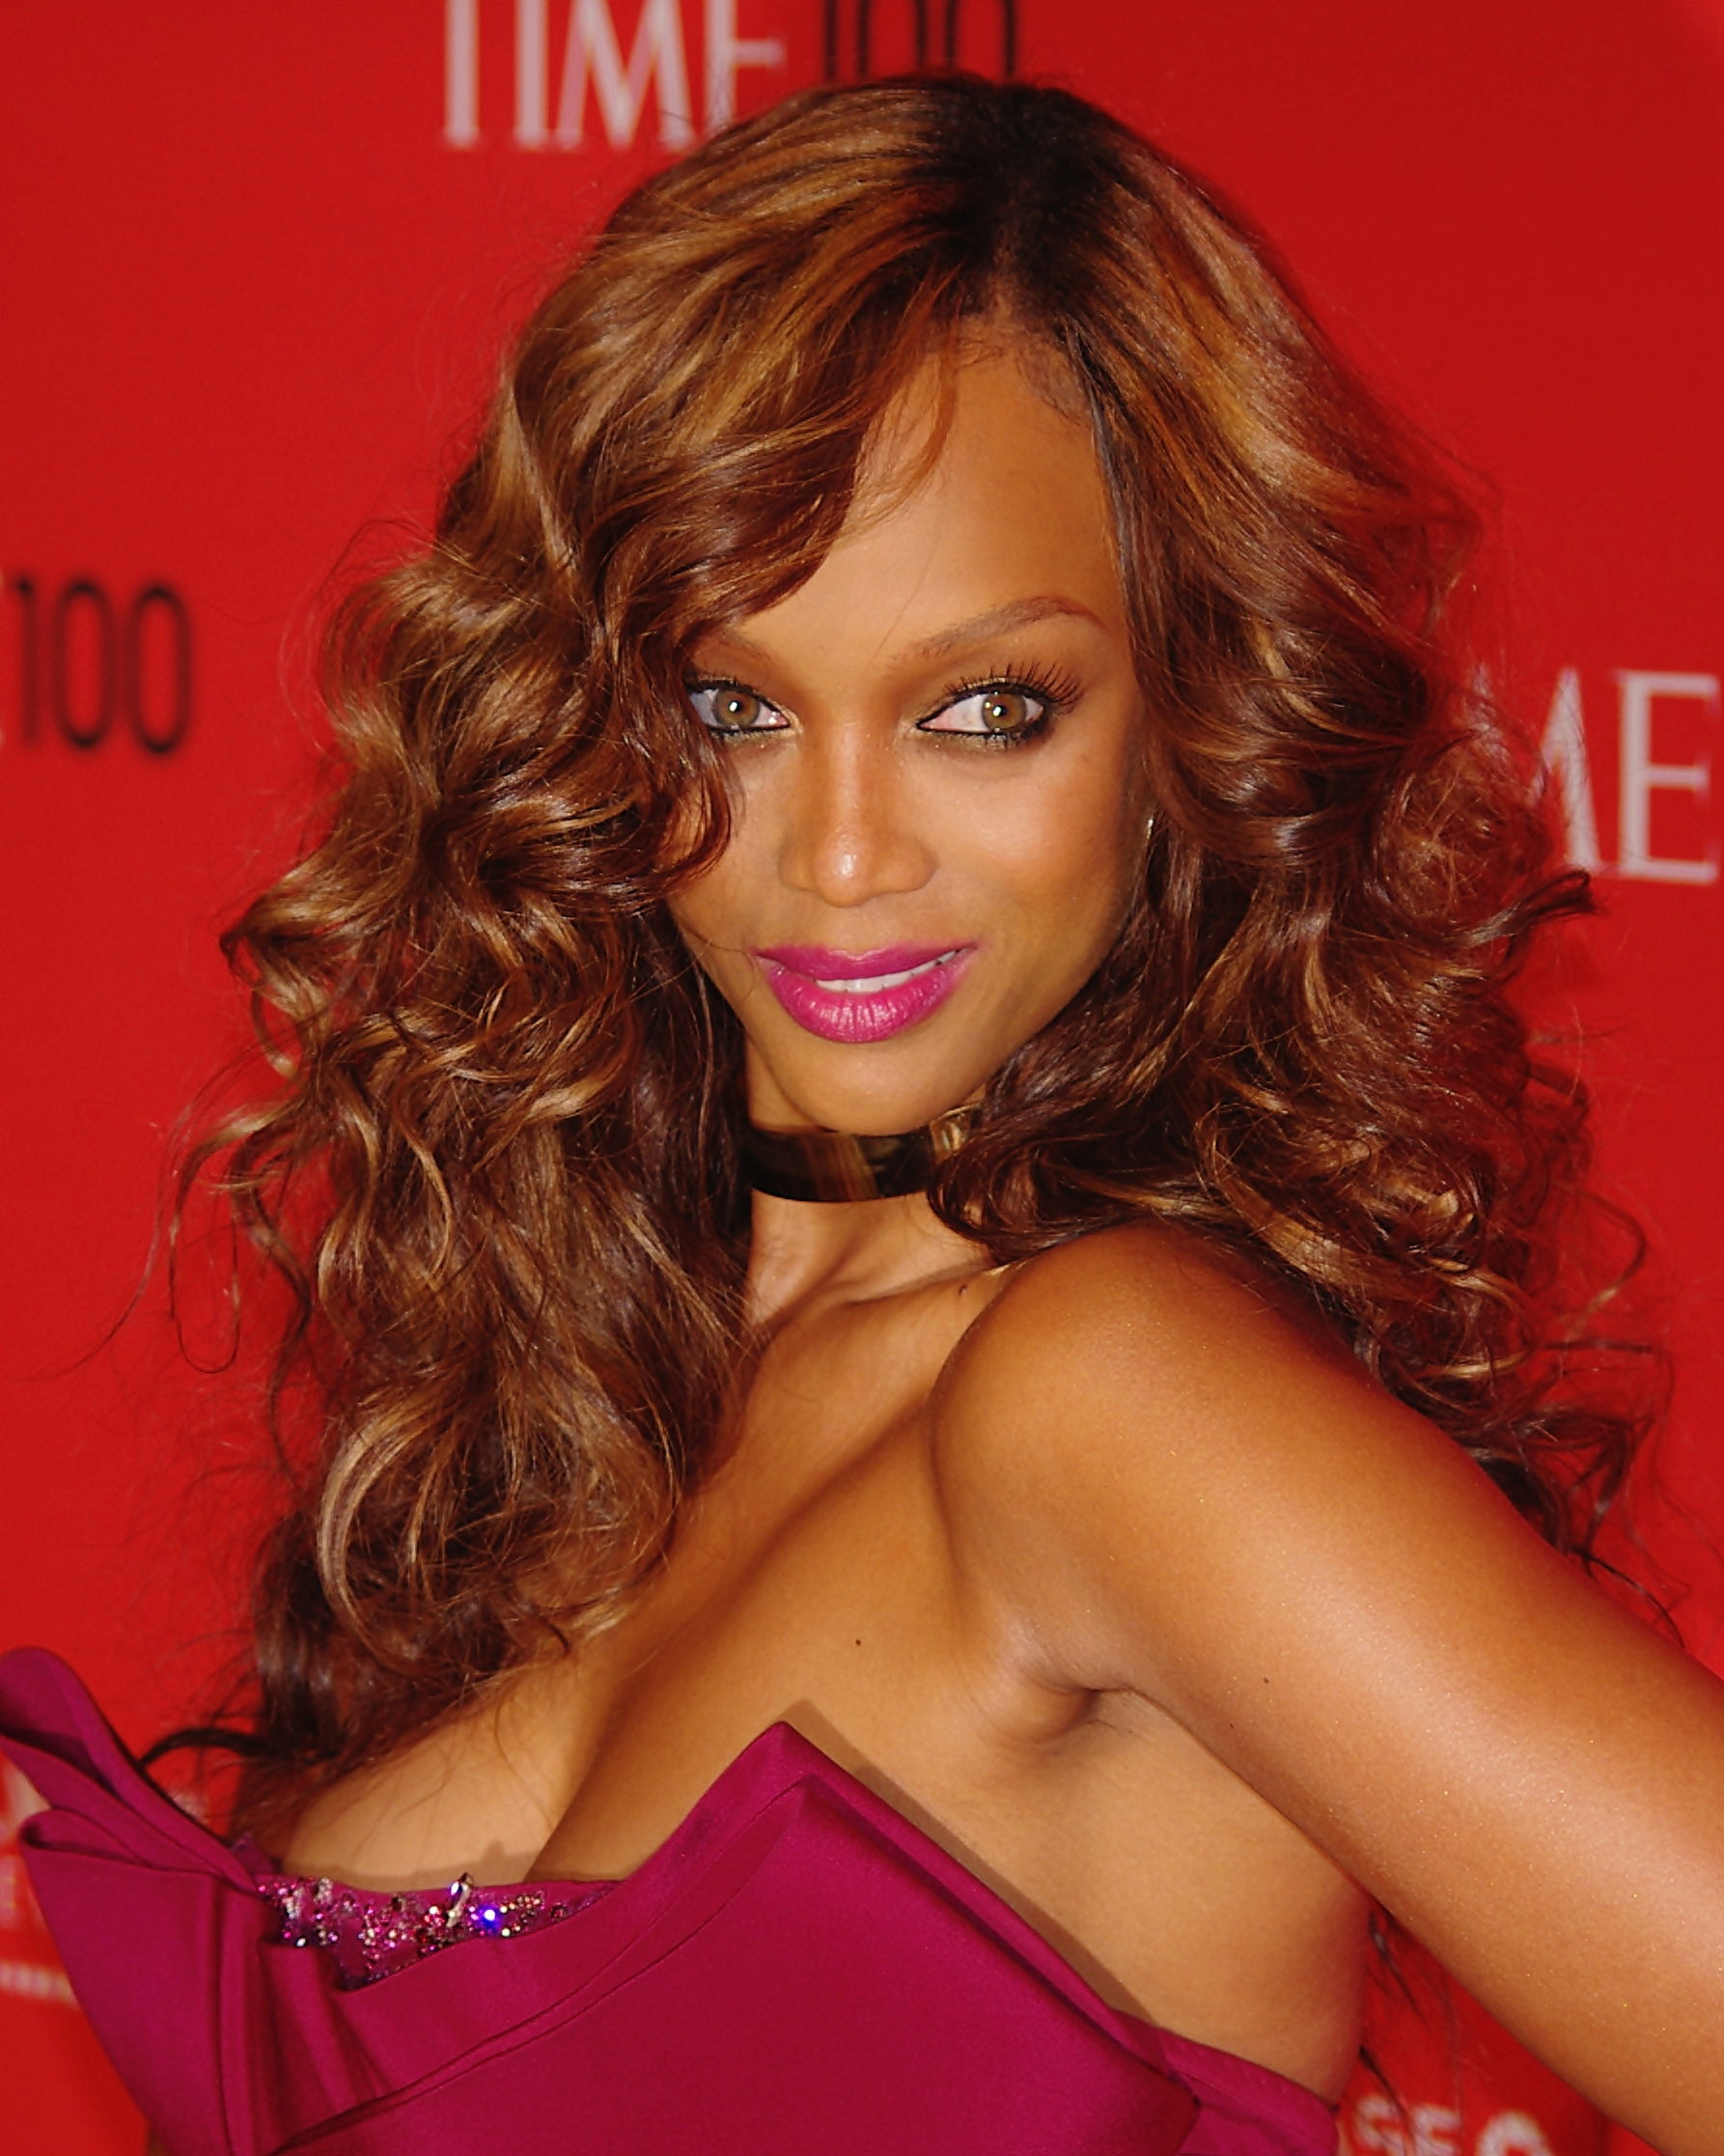 Tyra Banks Wikipedia The Free Encyclopedia